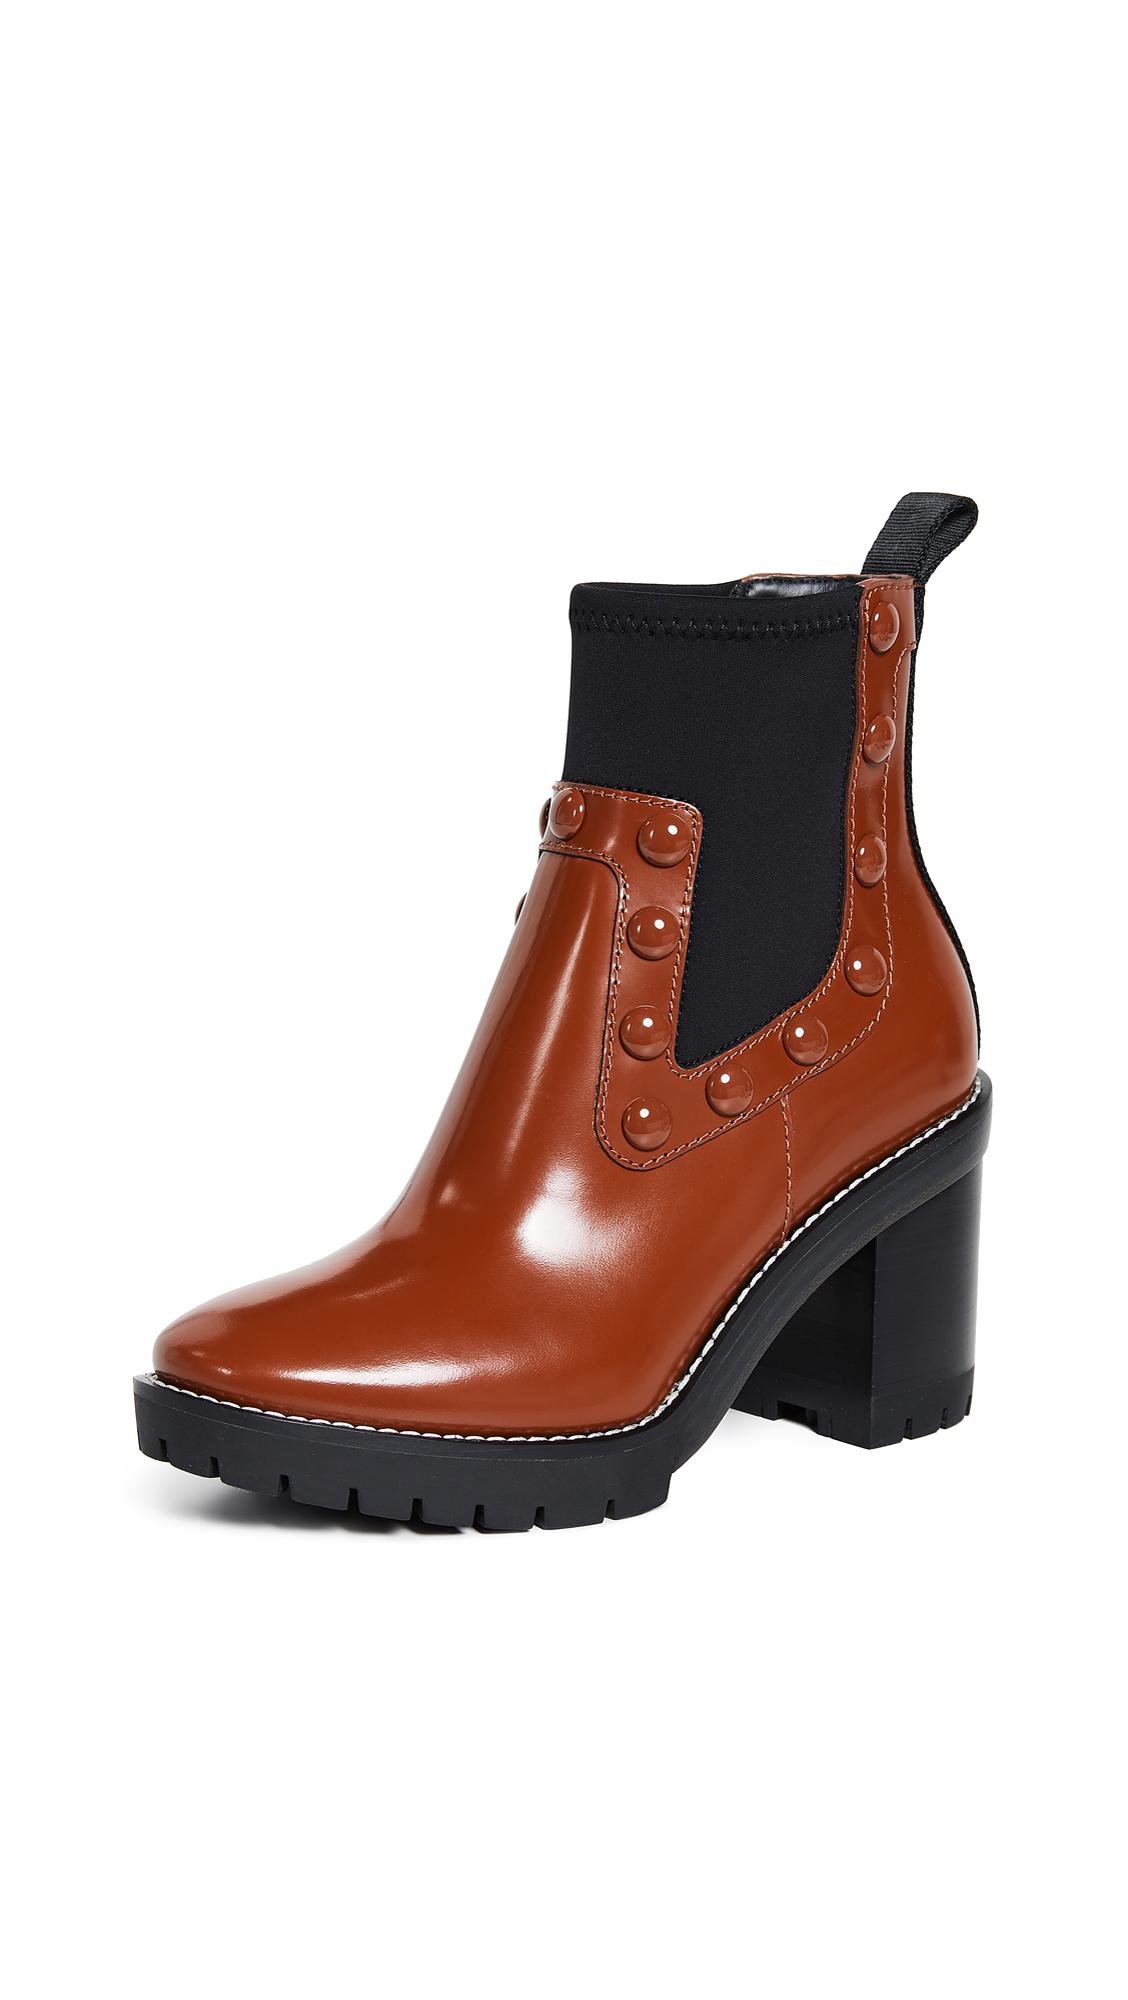 Tory Burch Preston Stud Booties - Dark Sienna/Perfect Black